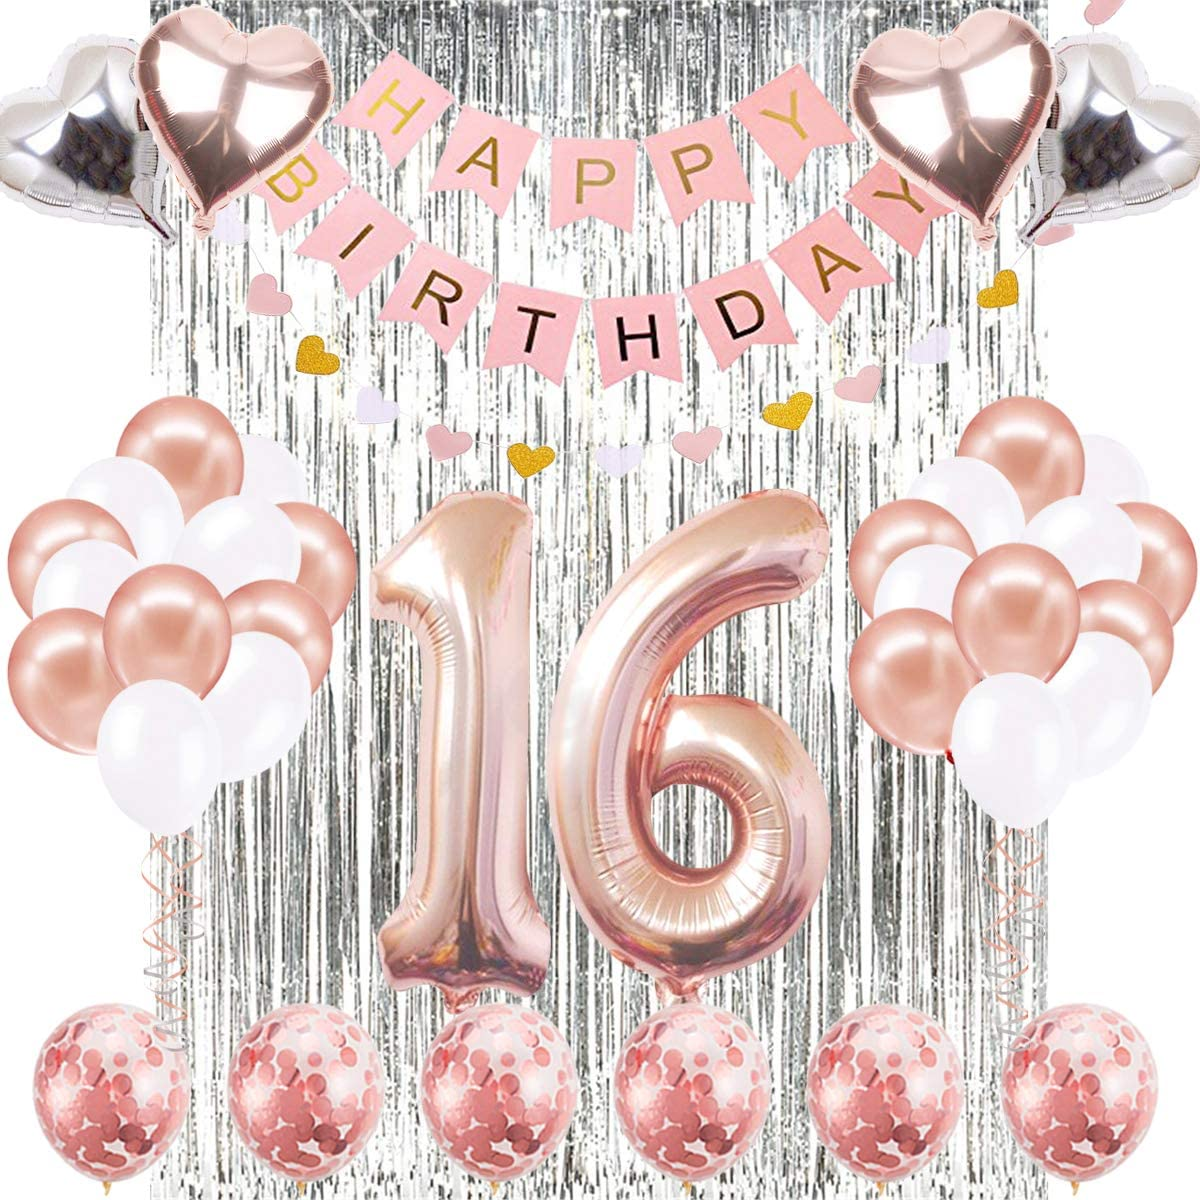 16/'/' Number Balloons Gold// Silver Foil Ballon Wedding Party Birthday Decor Gift